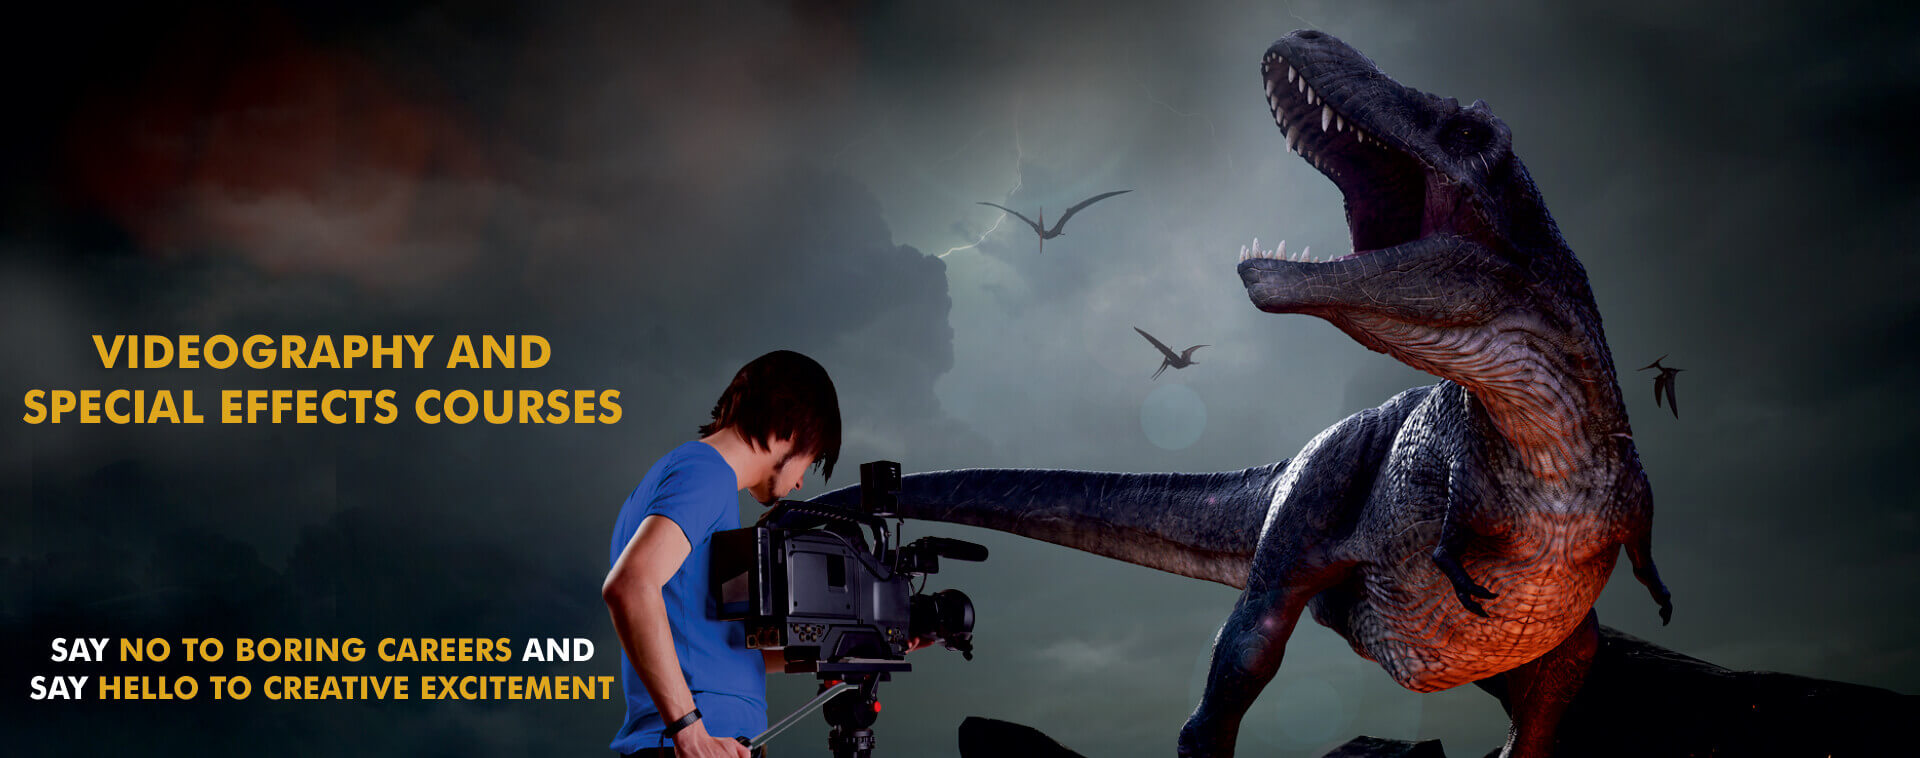 Best Coaching Academy for Videography in Hyderabad |Delhi